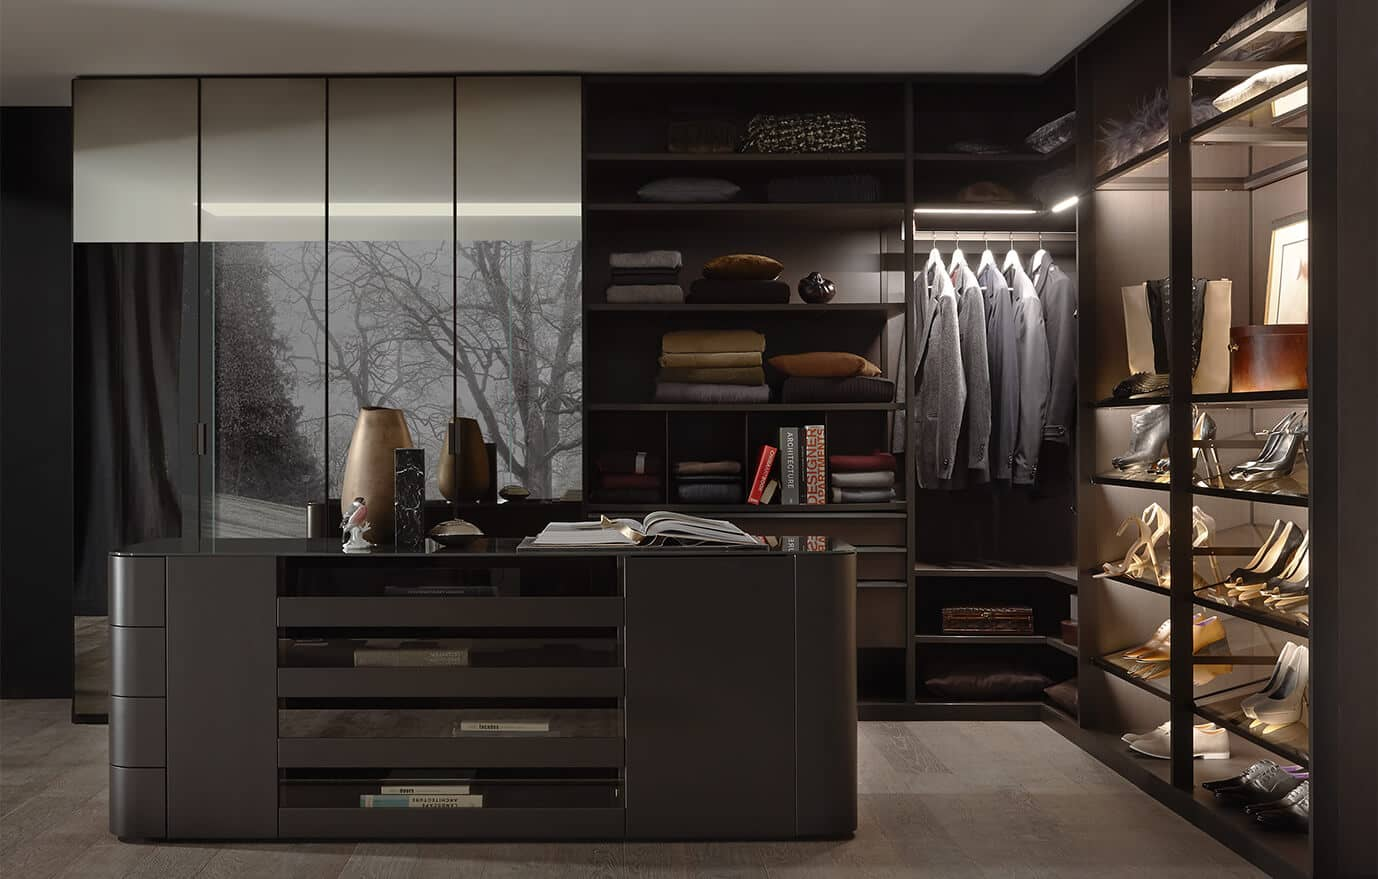 misuraemme hampshire devon wardrobe dorset walk in london wardrobes millimetrica fitted